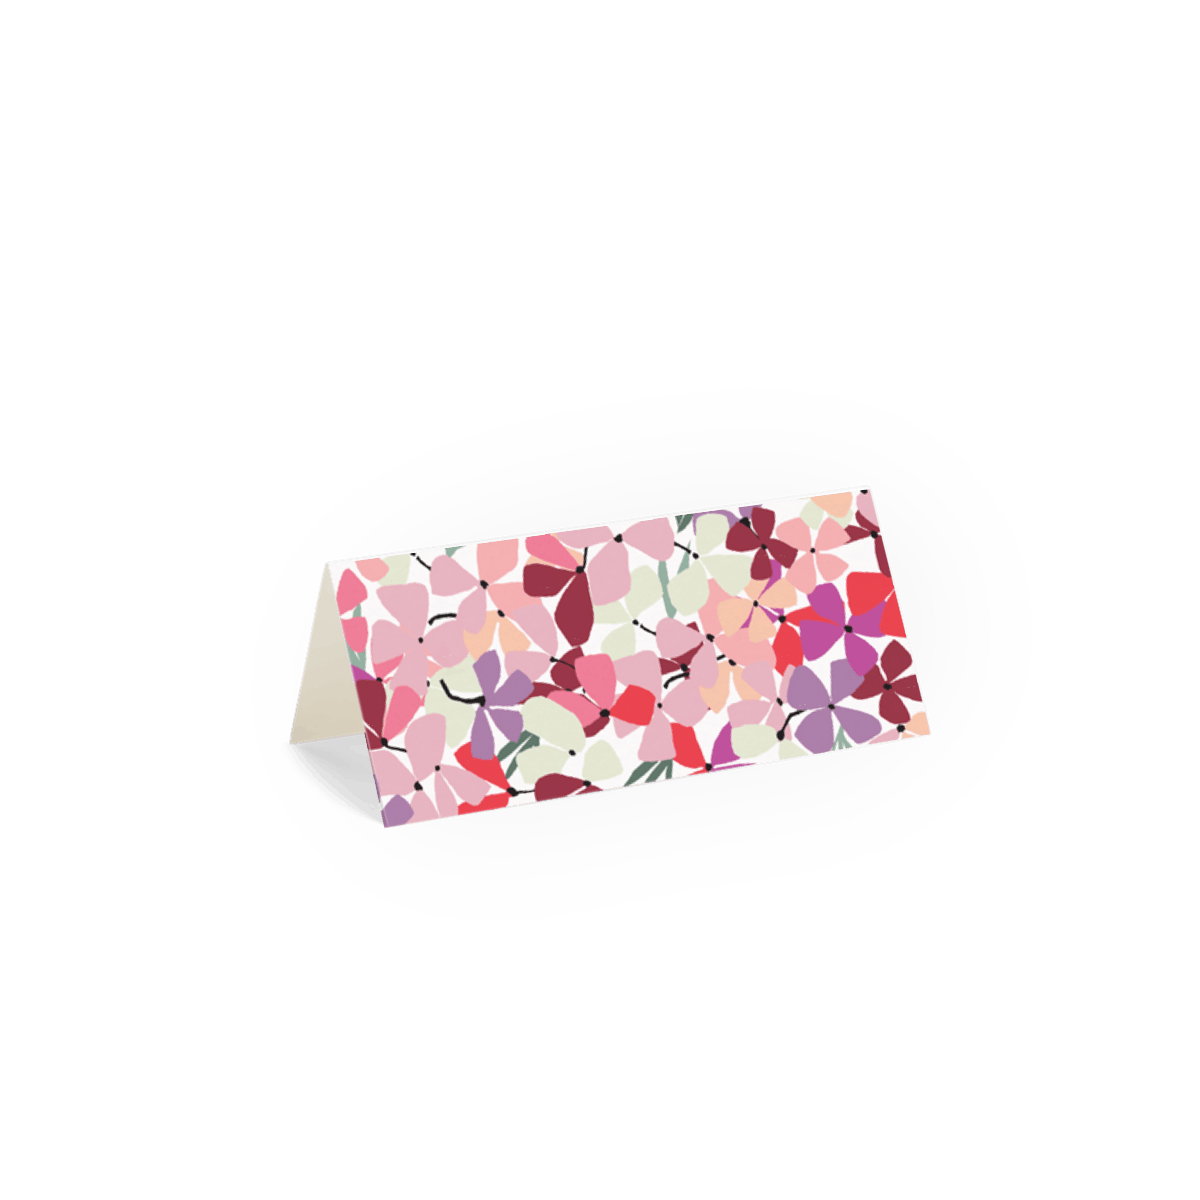 Https%3a%2f%2fwww.papier.com%2fproduct image%2f82299%2f15%2fhortensia pink 19897 arriere 1562078754.png?ixlib=rb 1.1